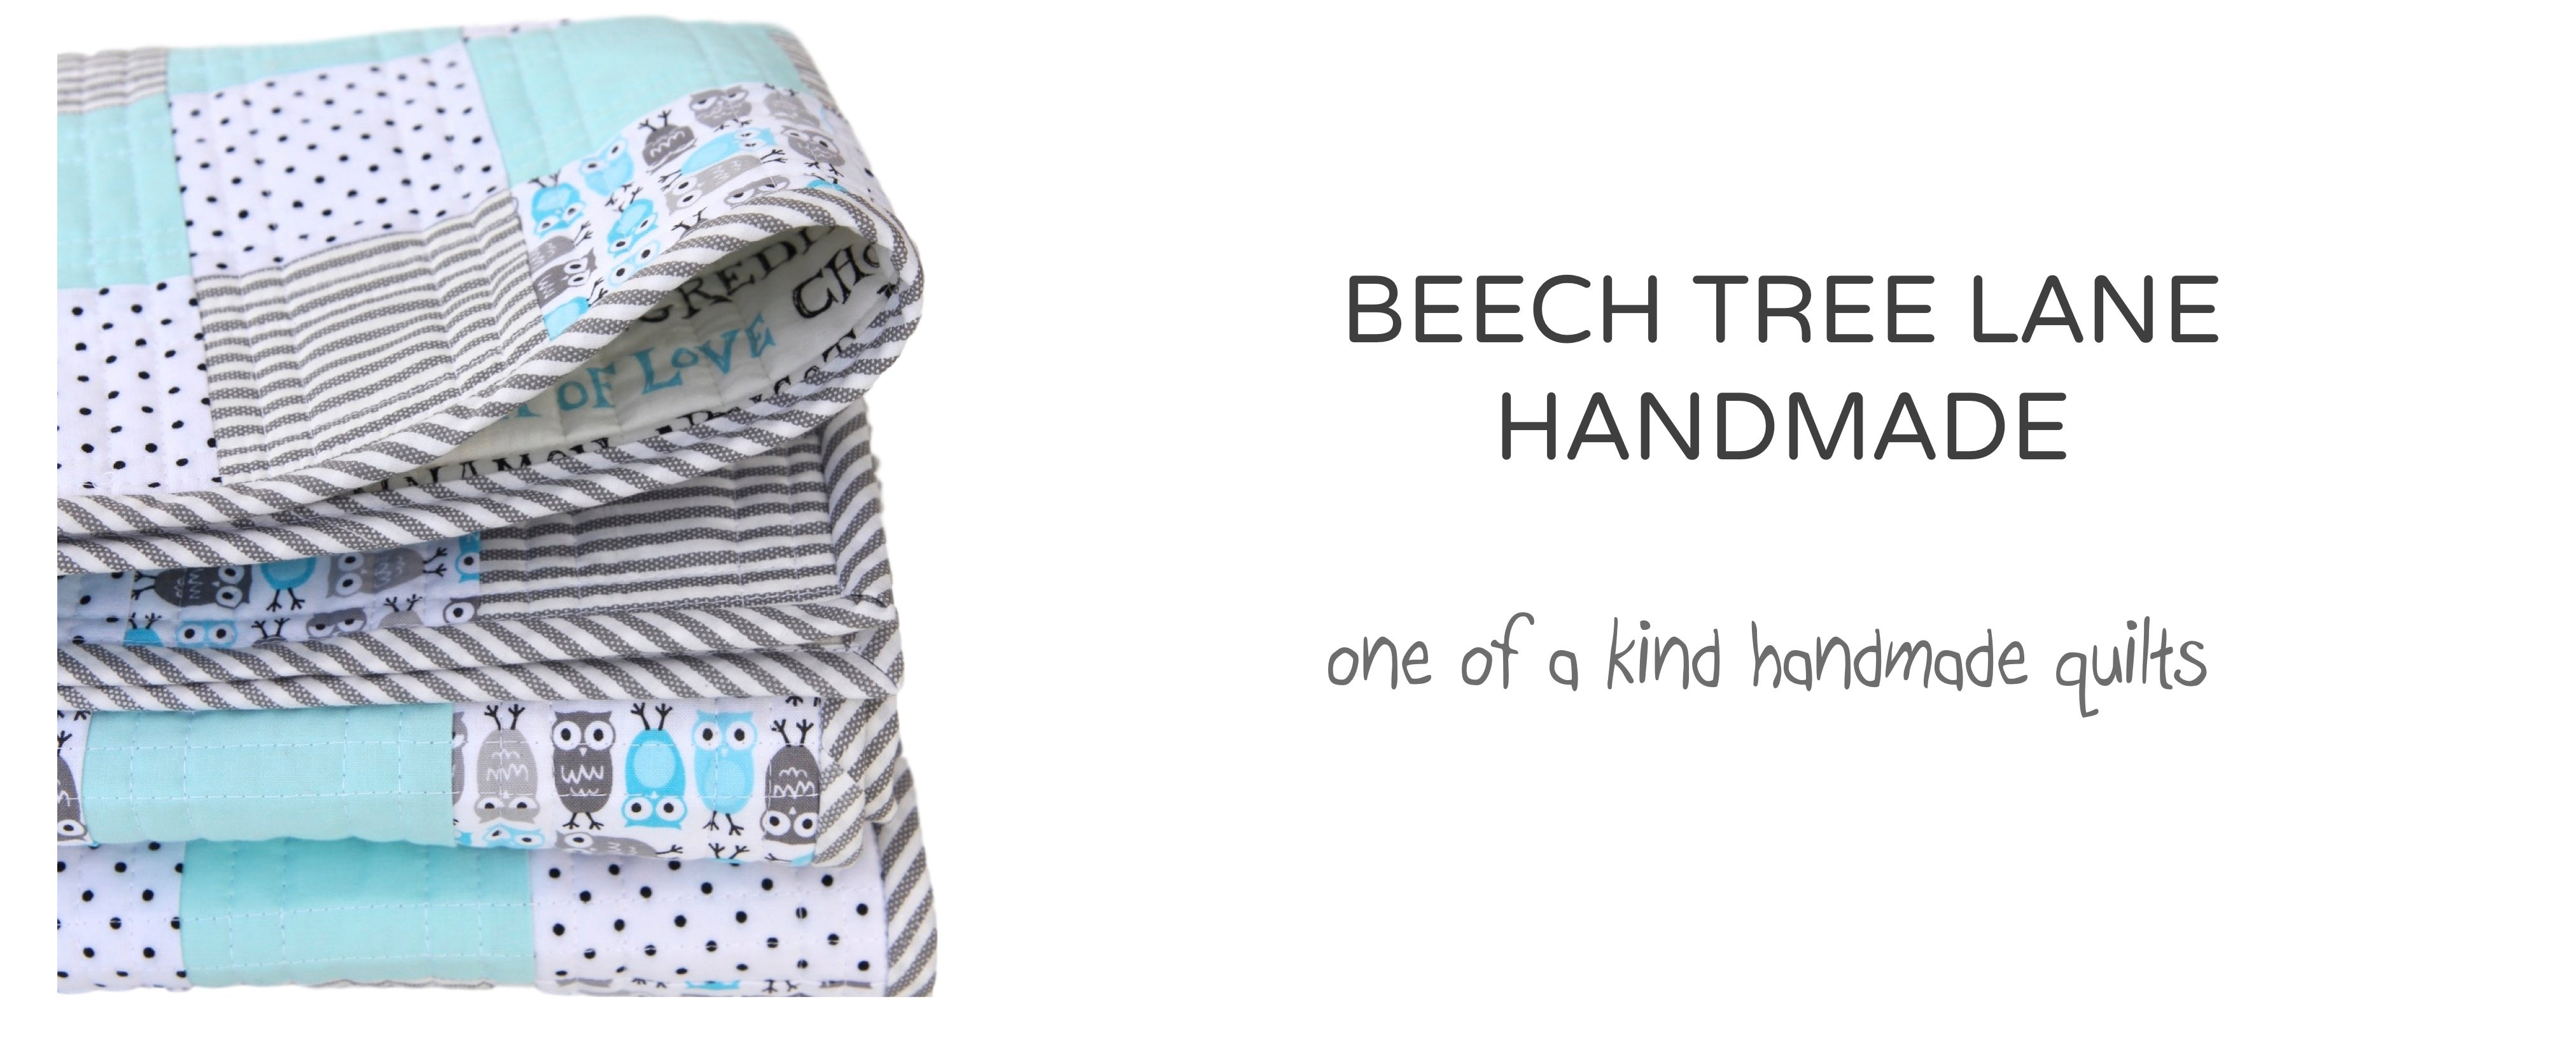 Beech Tree Lane Handmade